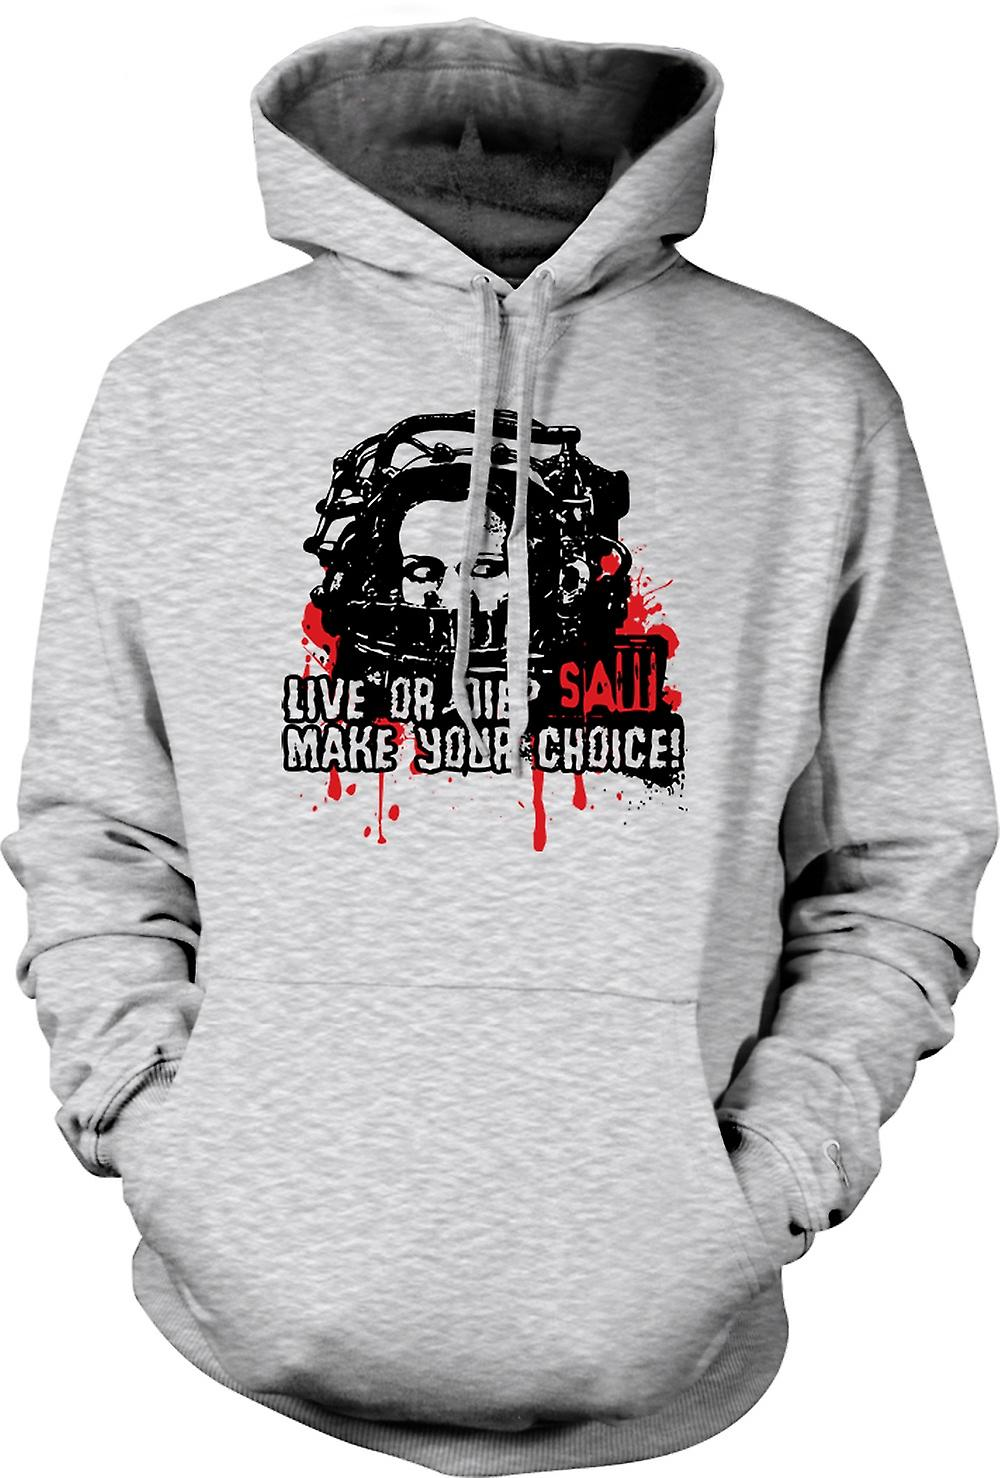 Mens Hoodie - Saw Live Or Die - Horror - Movie